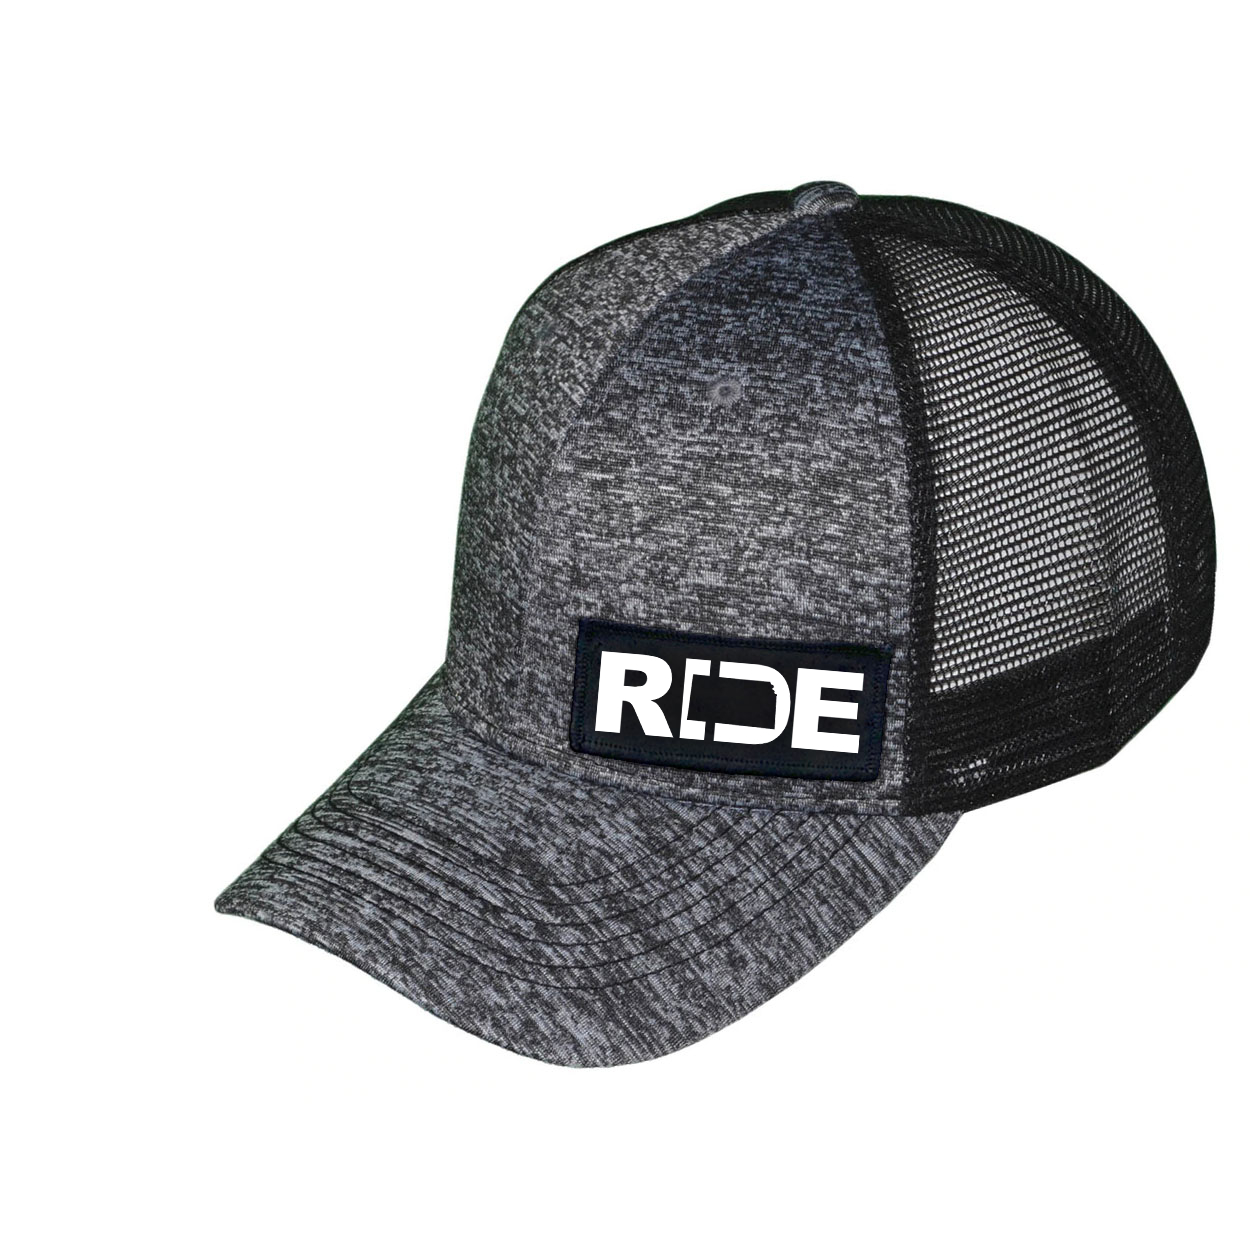 Ride Kansas Night Out Woven Patch Melange Snapback Trucker Hat Gray/Black (White Logo)